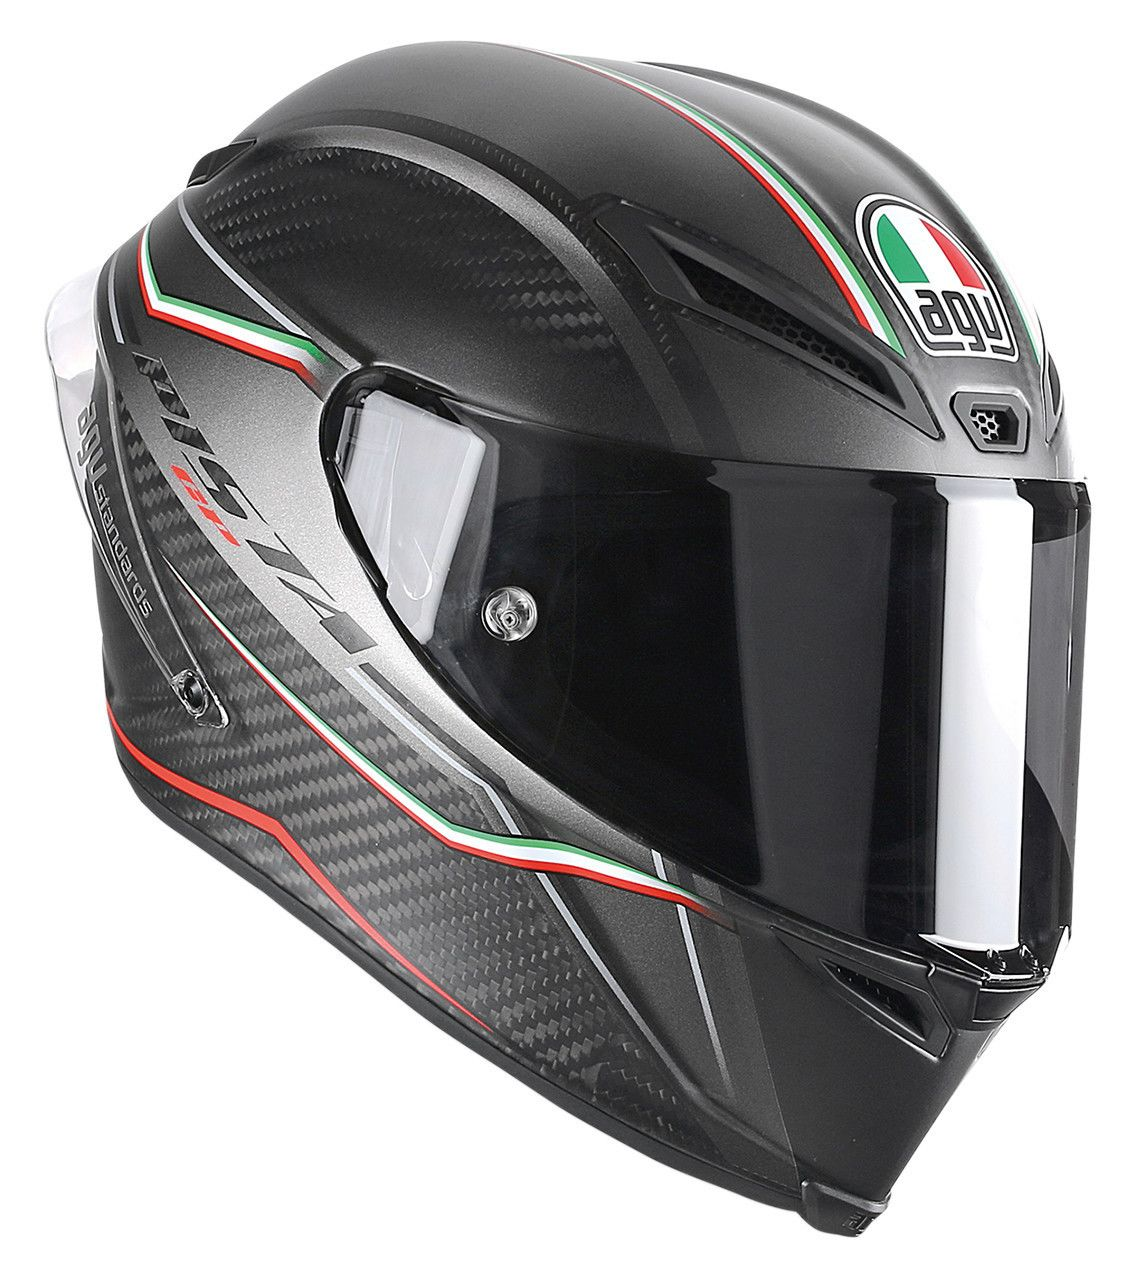 agv pista gp gran premio italia helmet revzilla. Black Bedroom Furniture Sets. Home Design Ideas